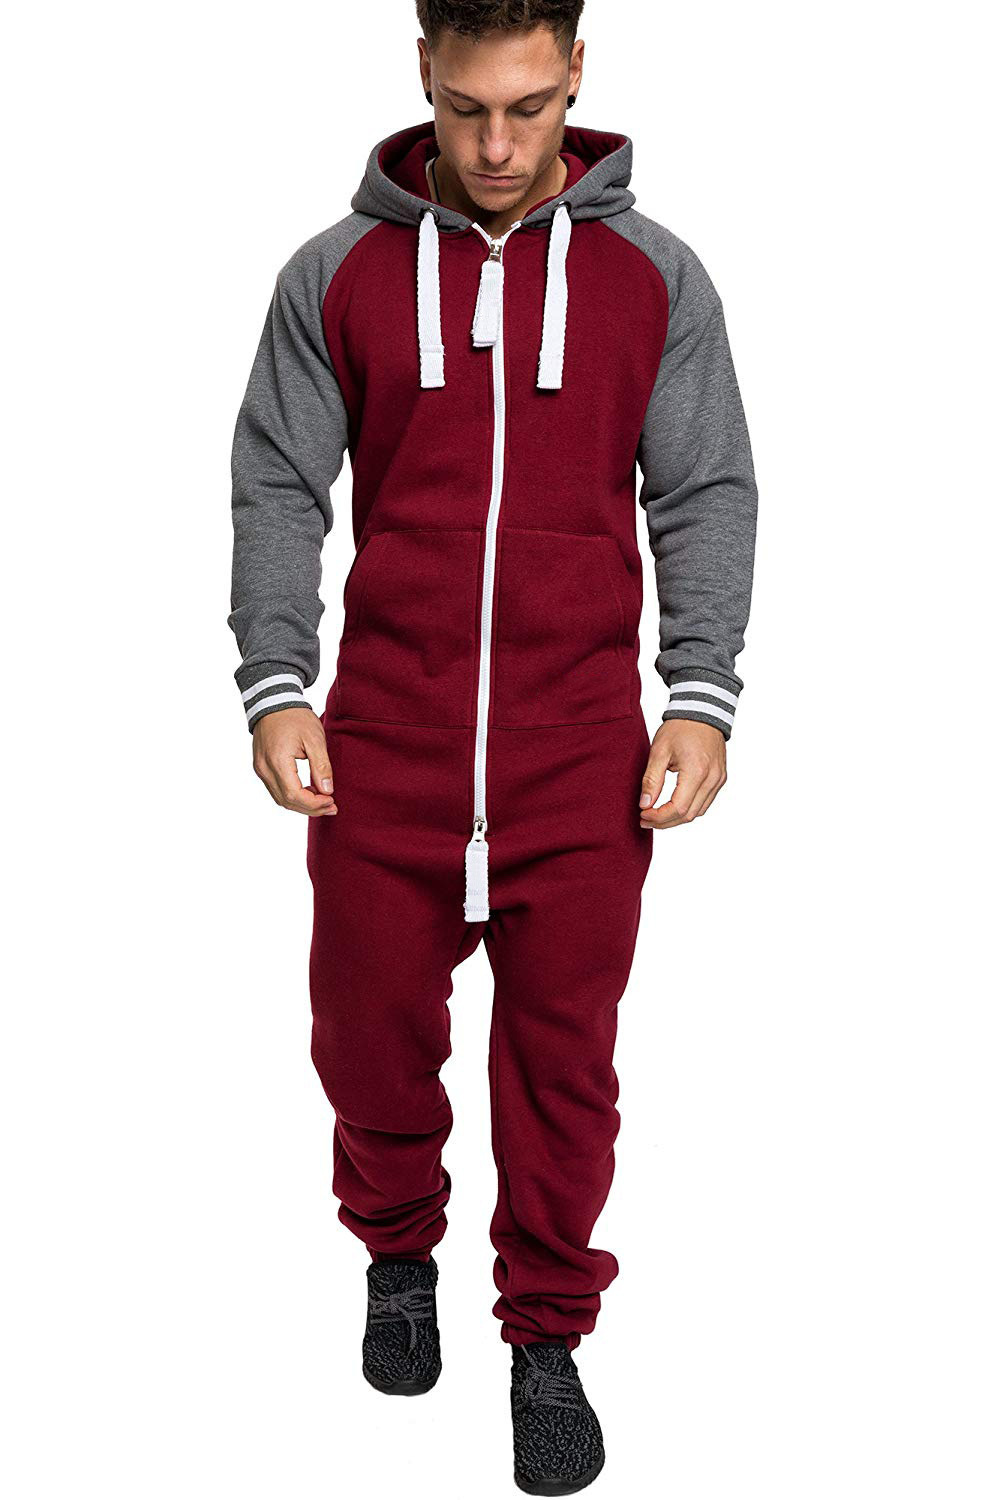 Casual Autumn Hooded Tracksuit Jumpsuit Long Pants Romper For Male Mens Fleece warm Overalls Sweatshirts Male Streetwear X9126 16